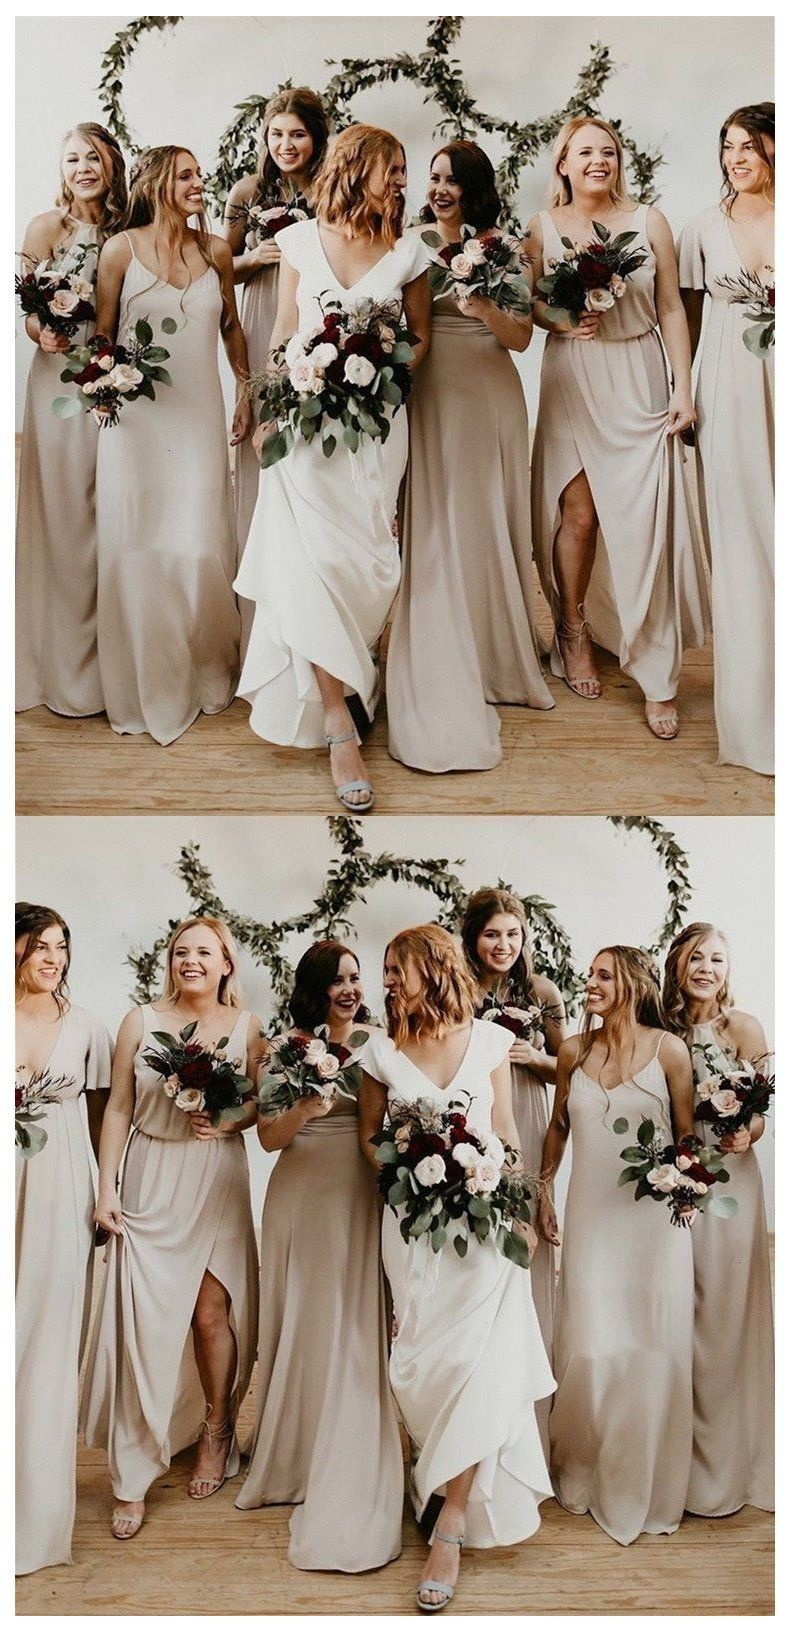 Zaful Discounts Instagram Photos And Videos Light Champagne Bridesmaid D In 2020 Neutral Bridesmaid Dresses Champagne Bridesmaid Dresses Gold Bridesmaid Dresses,Plus Size Designer Wedding Dress